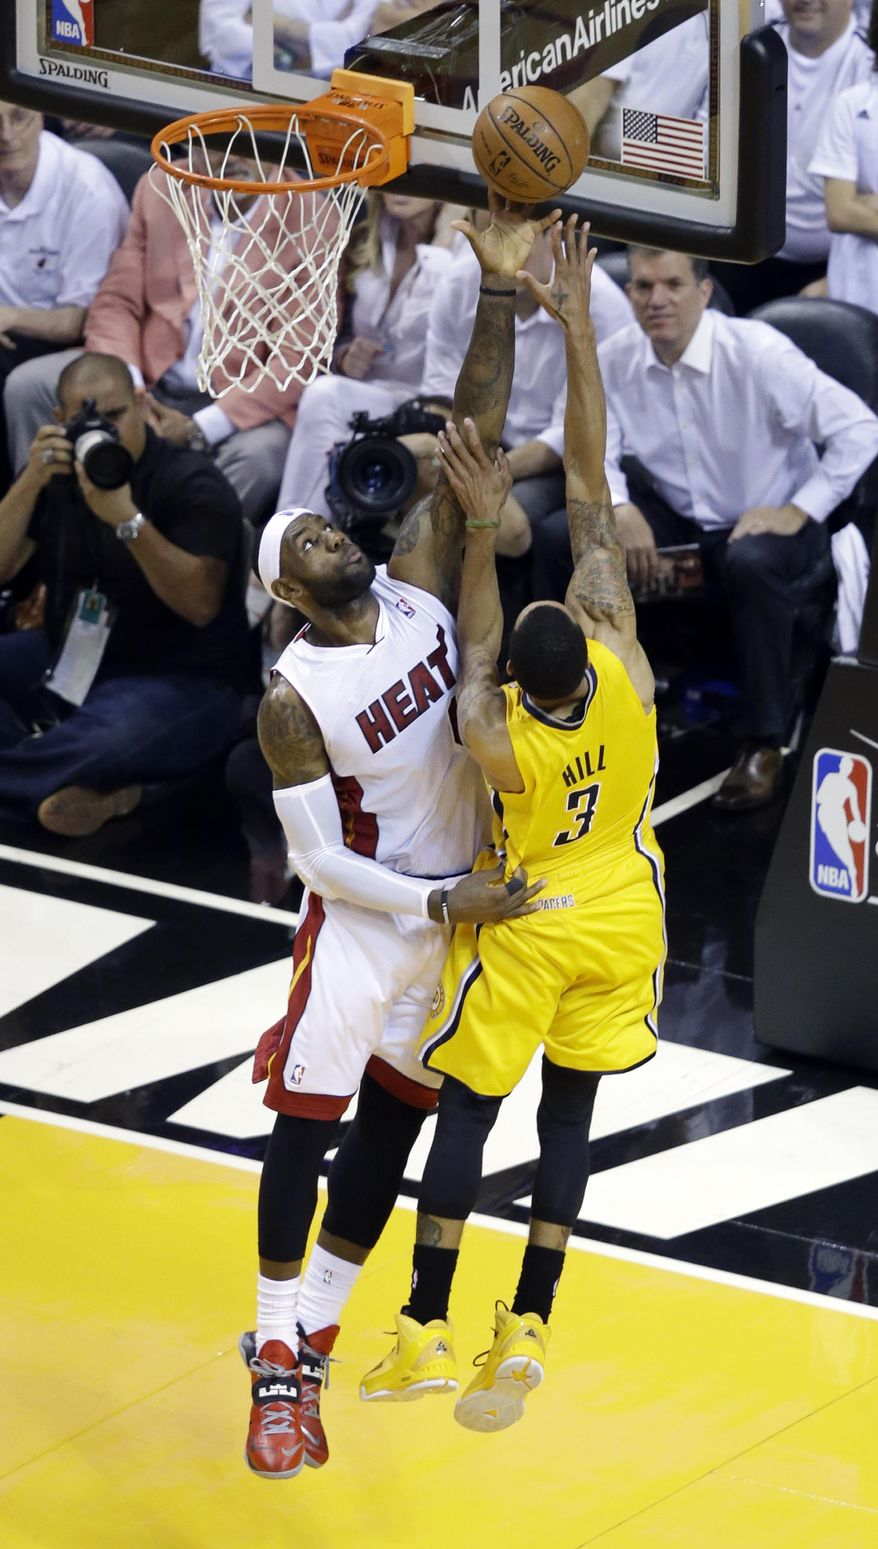 Miami Heat forward LeBron James, left, blocks a shot to the basket by Indiana Pacers guard George Hill (3), during the first half of Game 6 in the NBA basketball playoffs Eastern Conference finals on Friday, May 30, 2014 in Miami. (AP Photo/Wilfredo Lee)